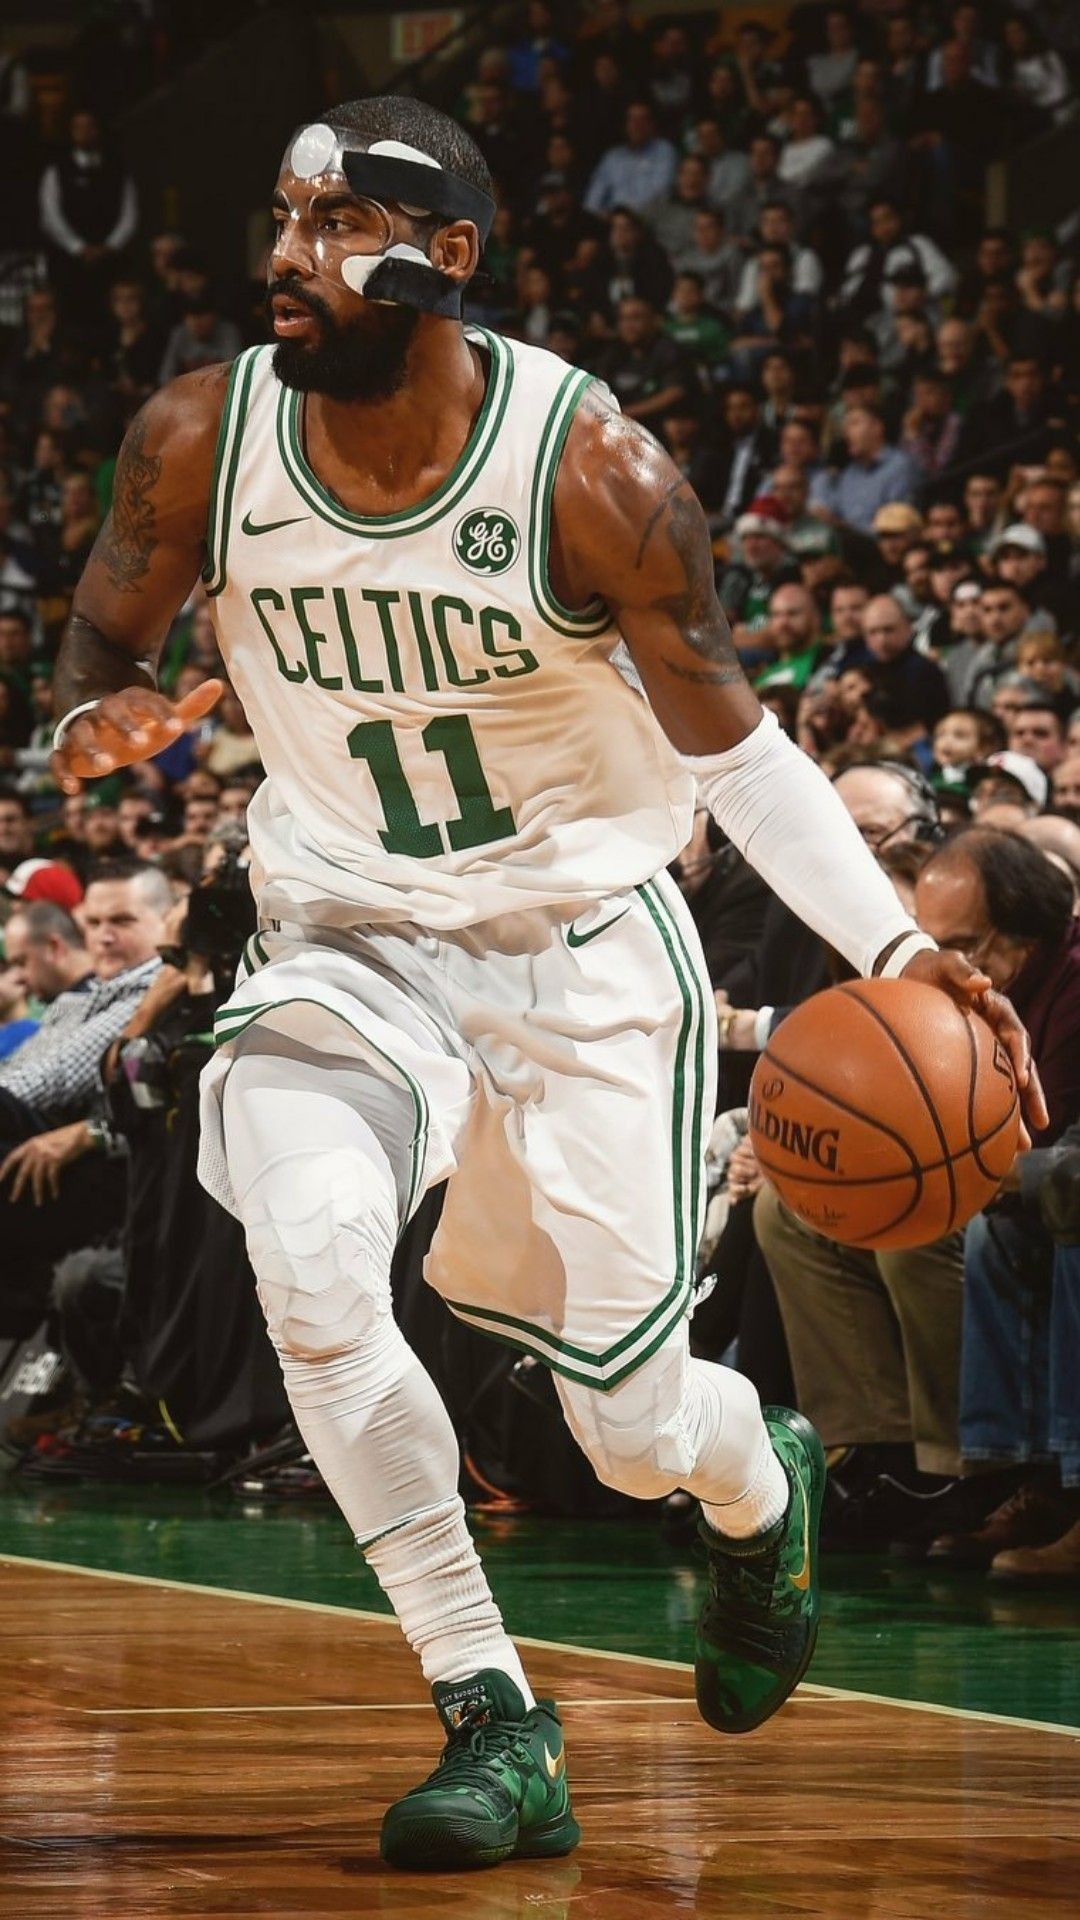 7 Kyrie Irving Coloring Pages To Print In 2020 Kyrie Irving Kyrie Irving Sneakers Kyrie Irving Celtics